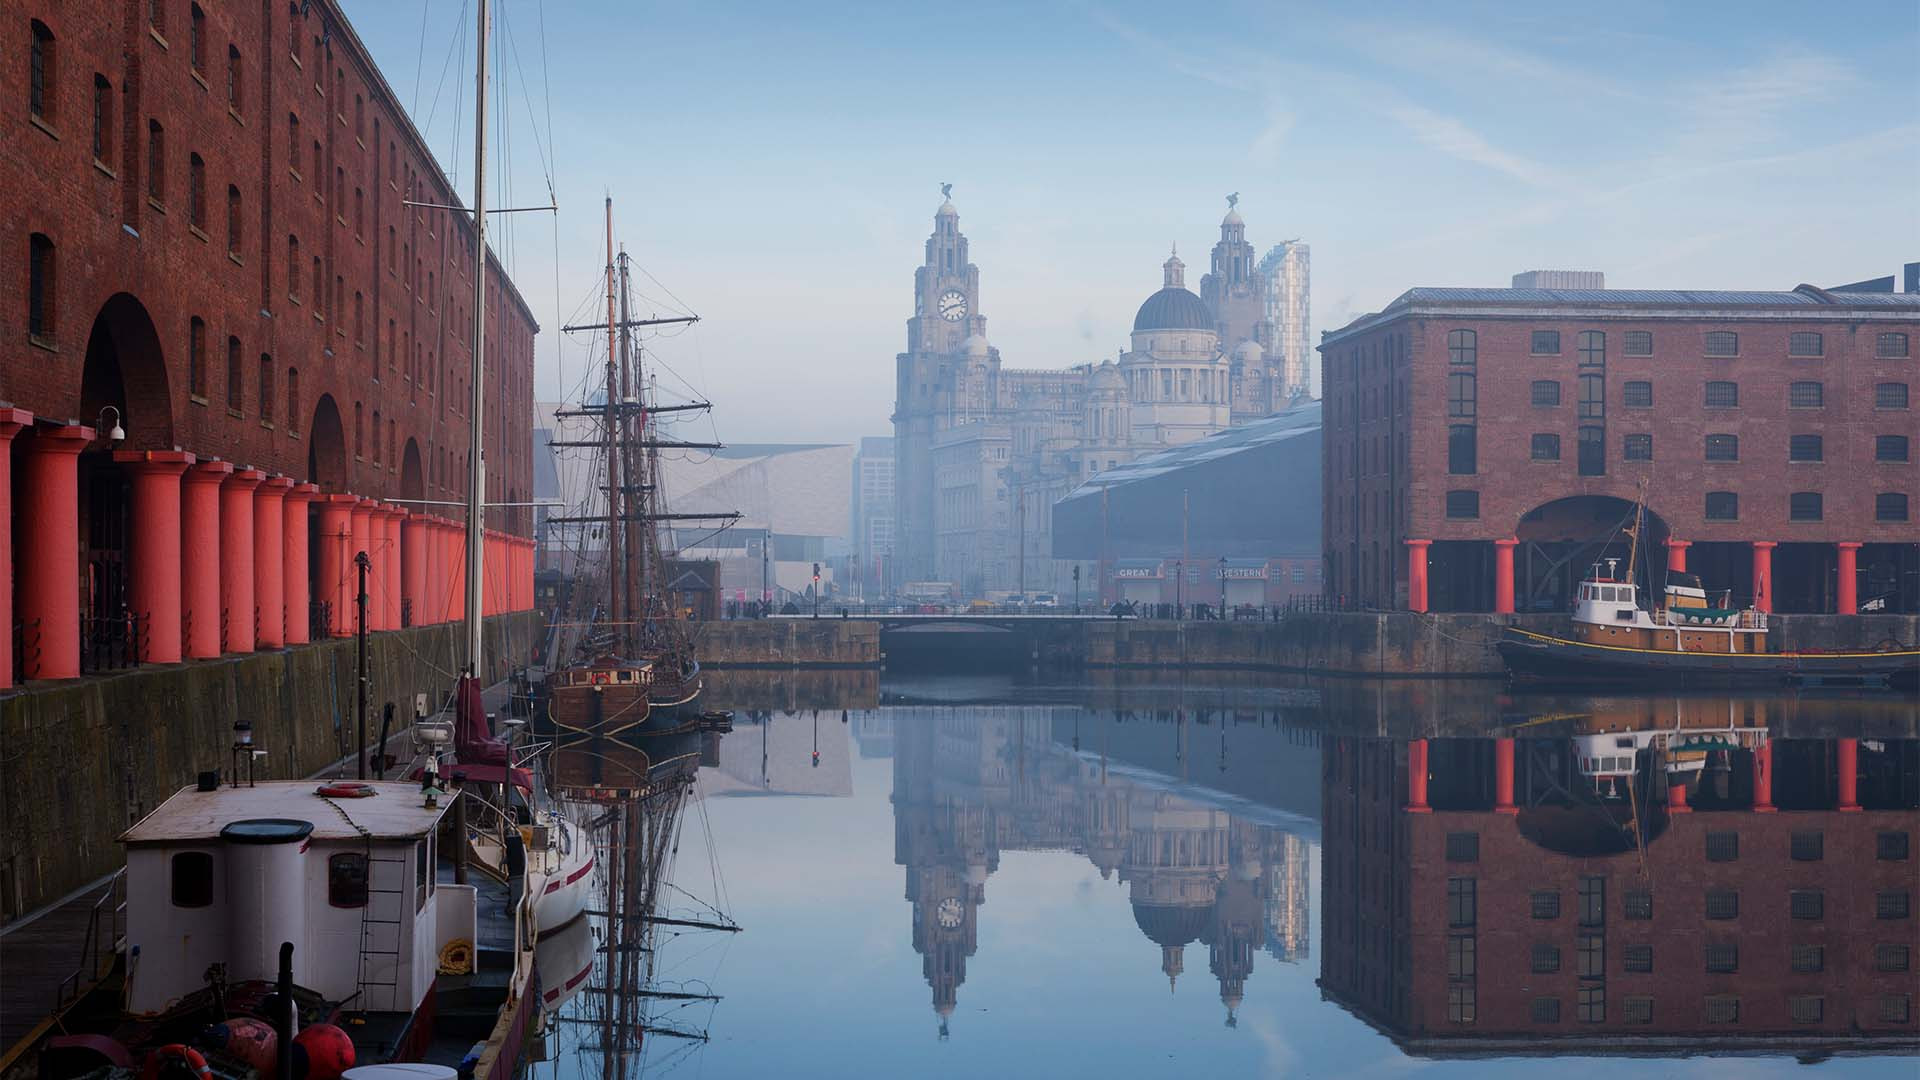 Maritime Albert Dock, Liverpool